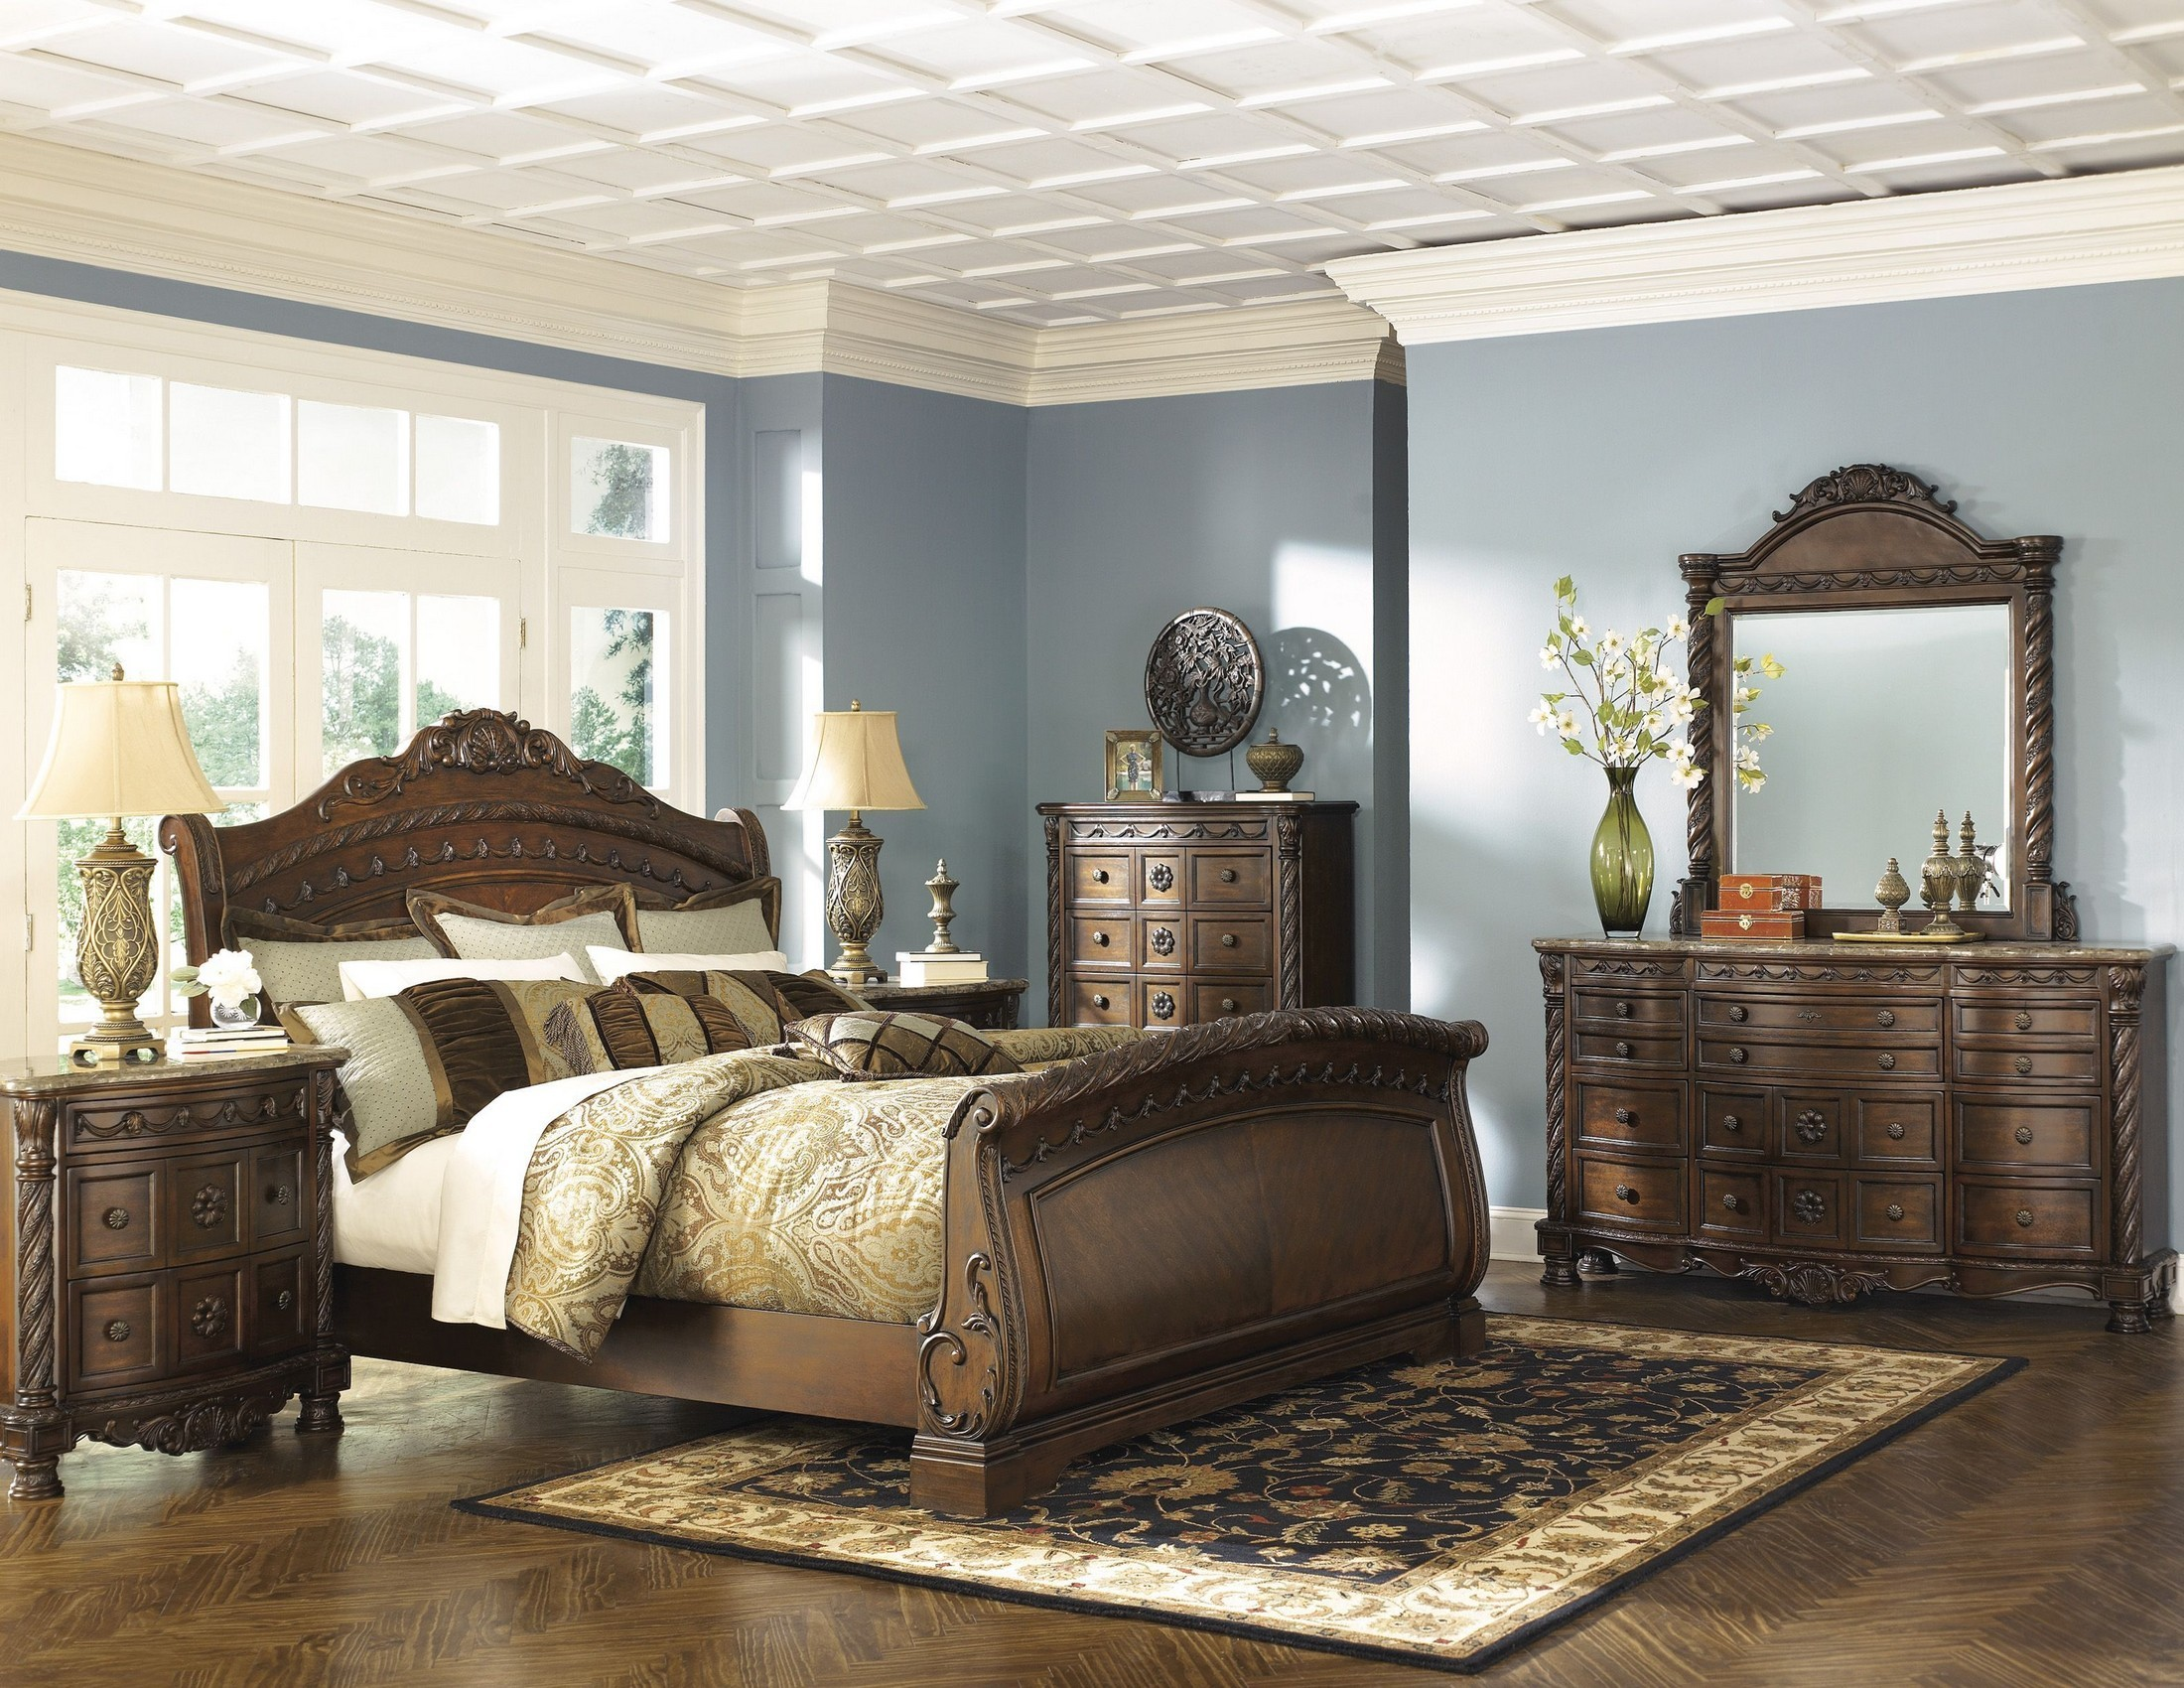 Bedroom sets coleman furniture - North Shore Sleigh Bedroom Set